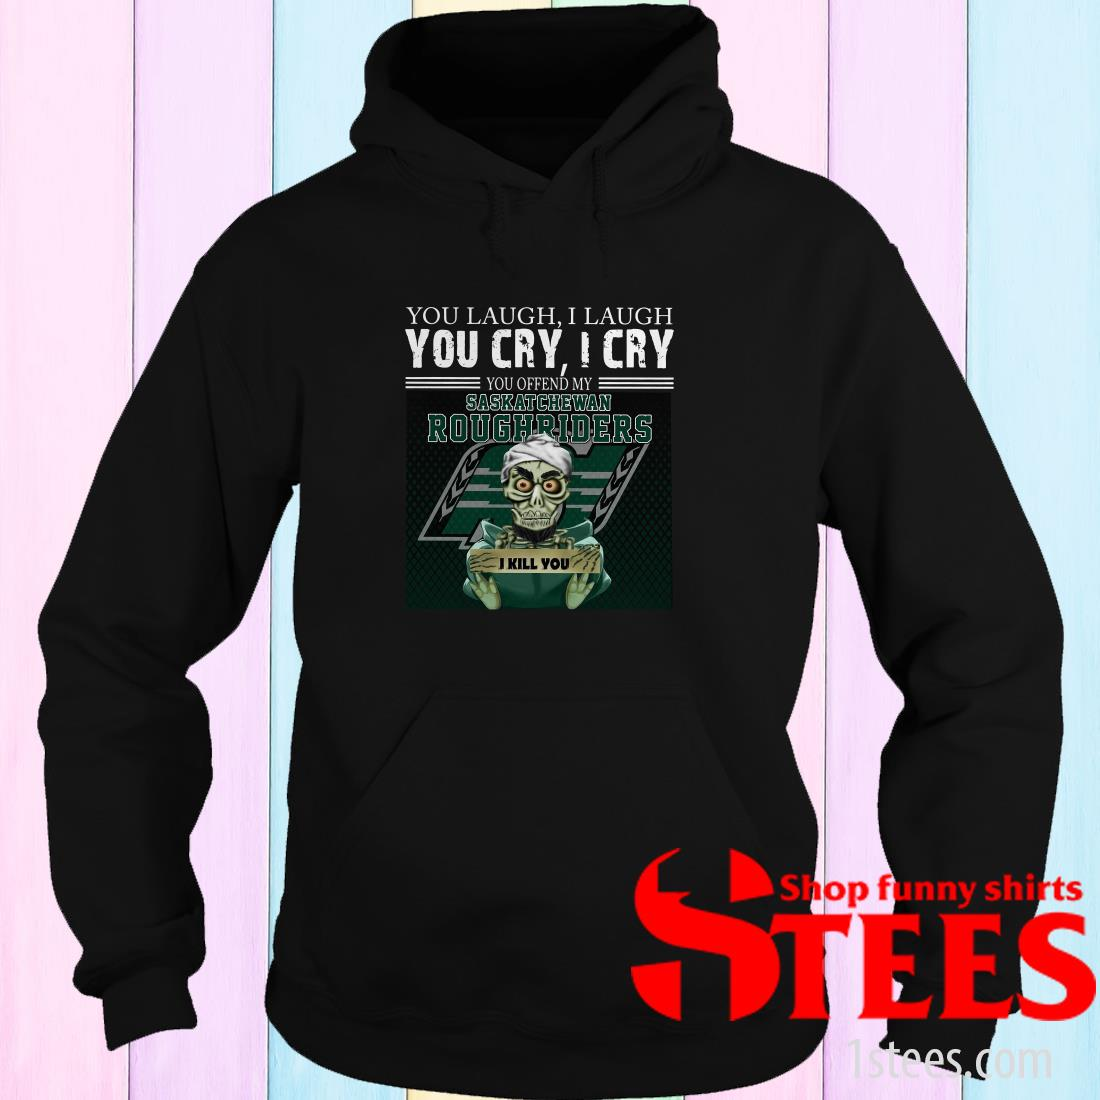 You Laugh I Laugh You Cry I Cry You Offend My Saskatchewan Roughriders Hoodie